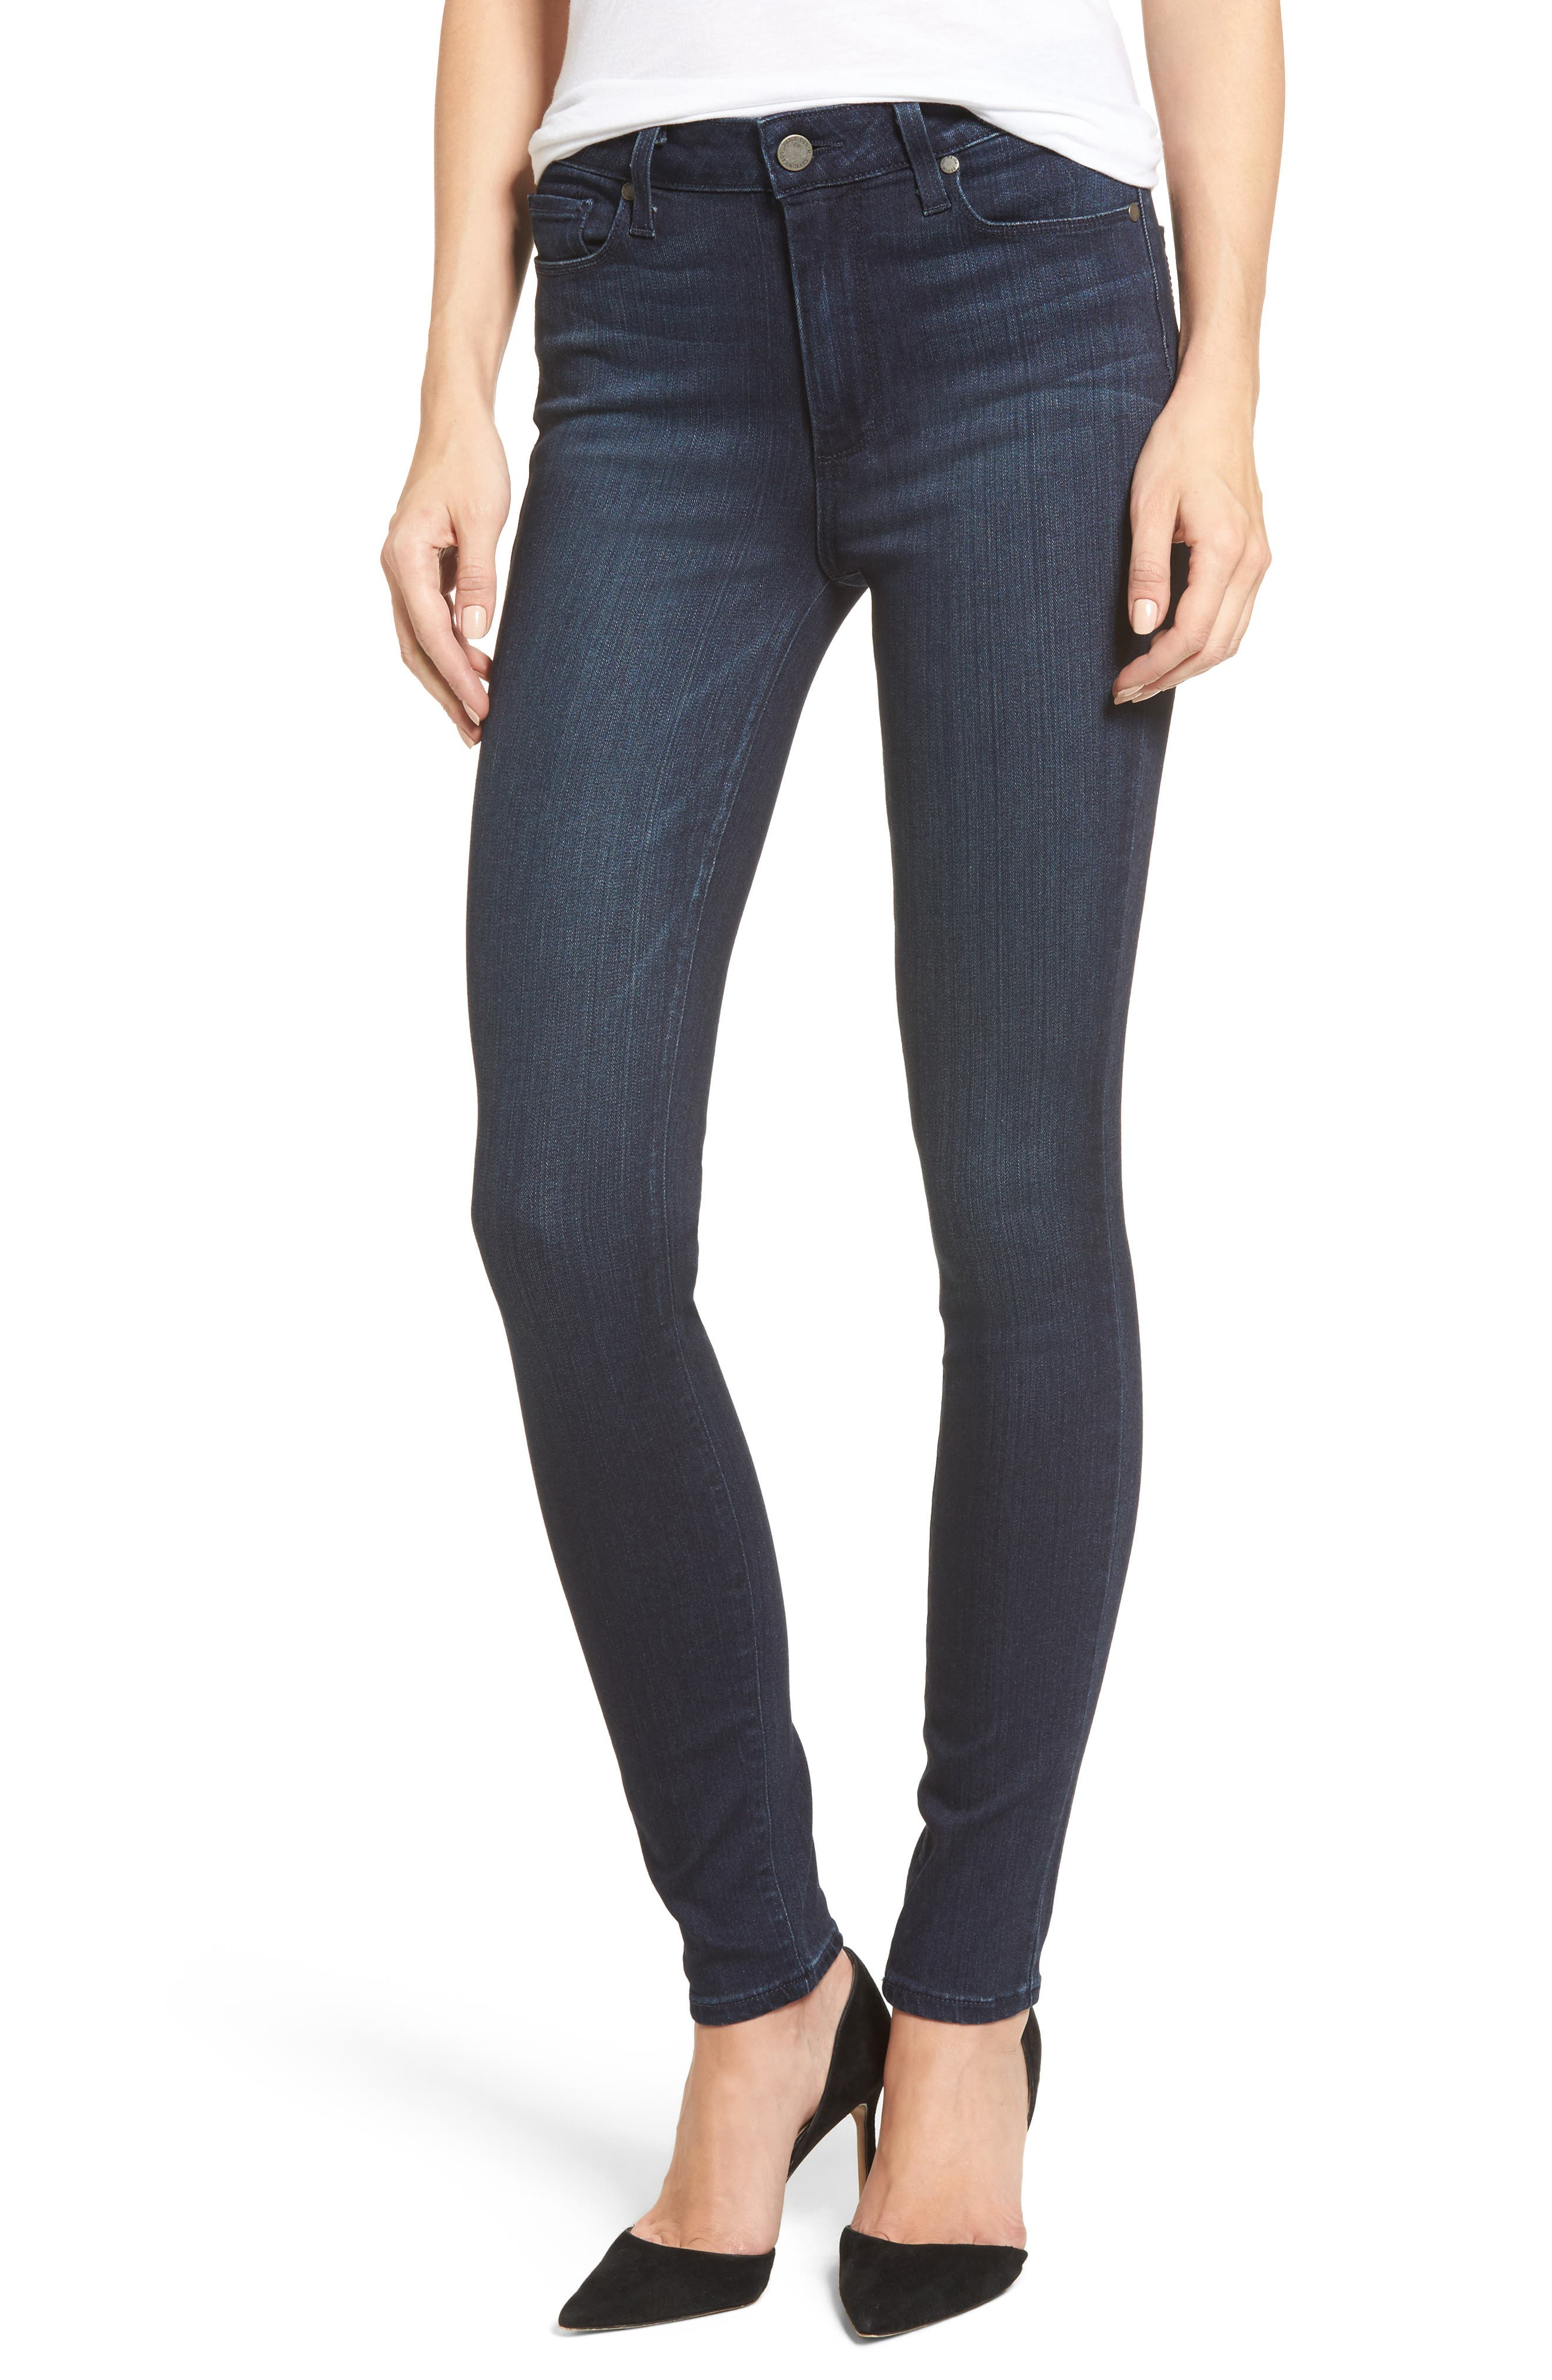 Alternate Image 1 Selected - PAIGE Transcend - Hoxton High Waist Ultra Skinny Jeans (Midlake)